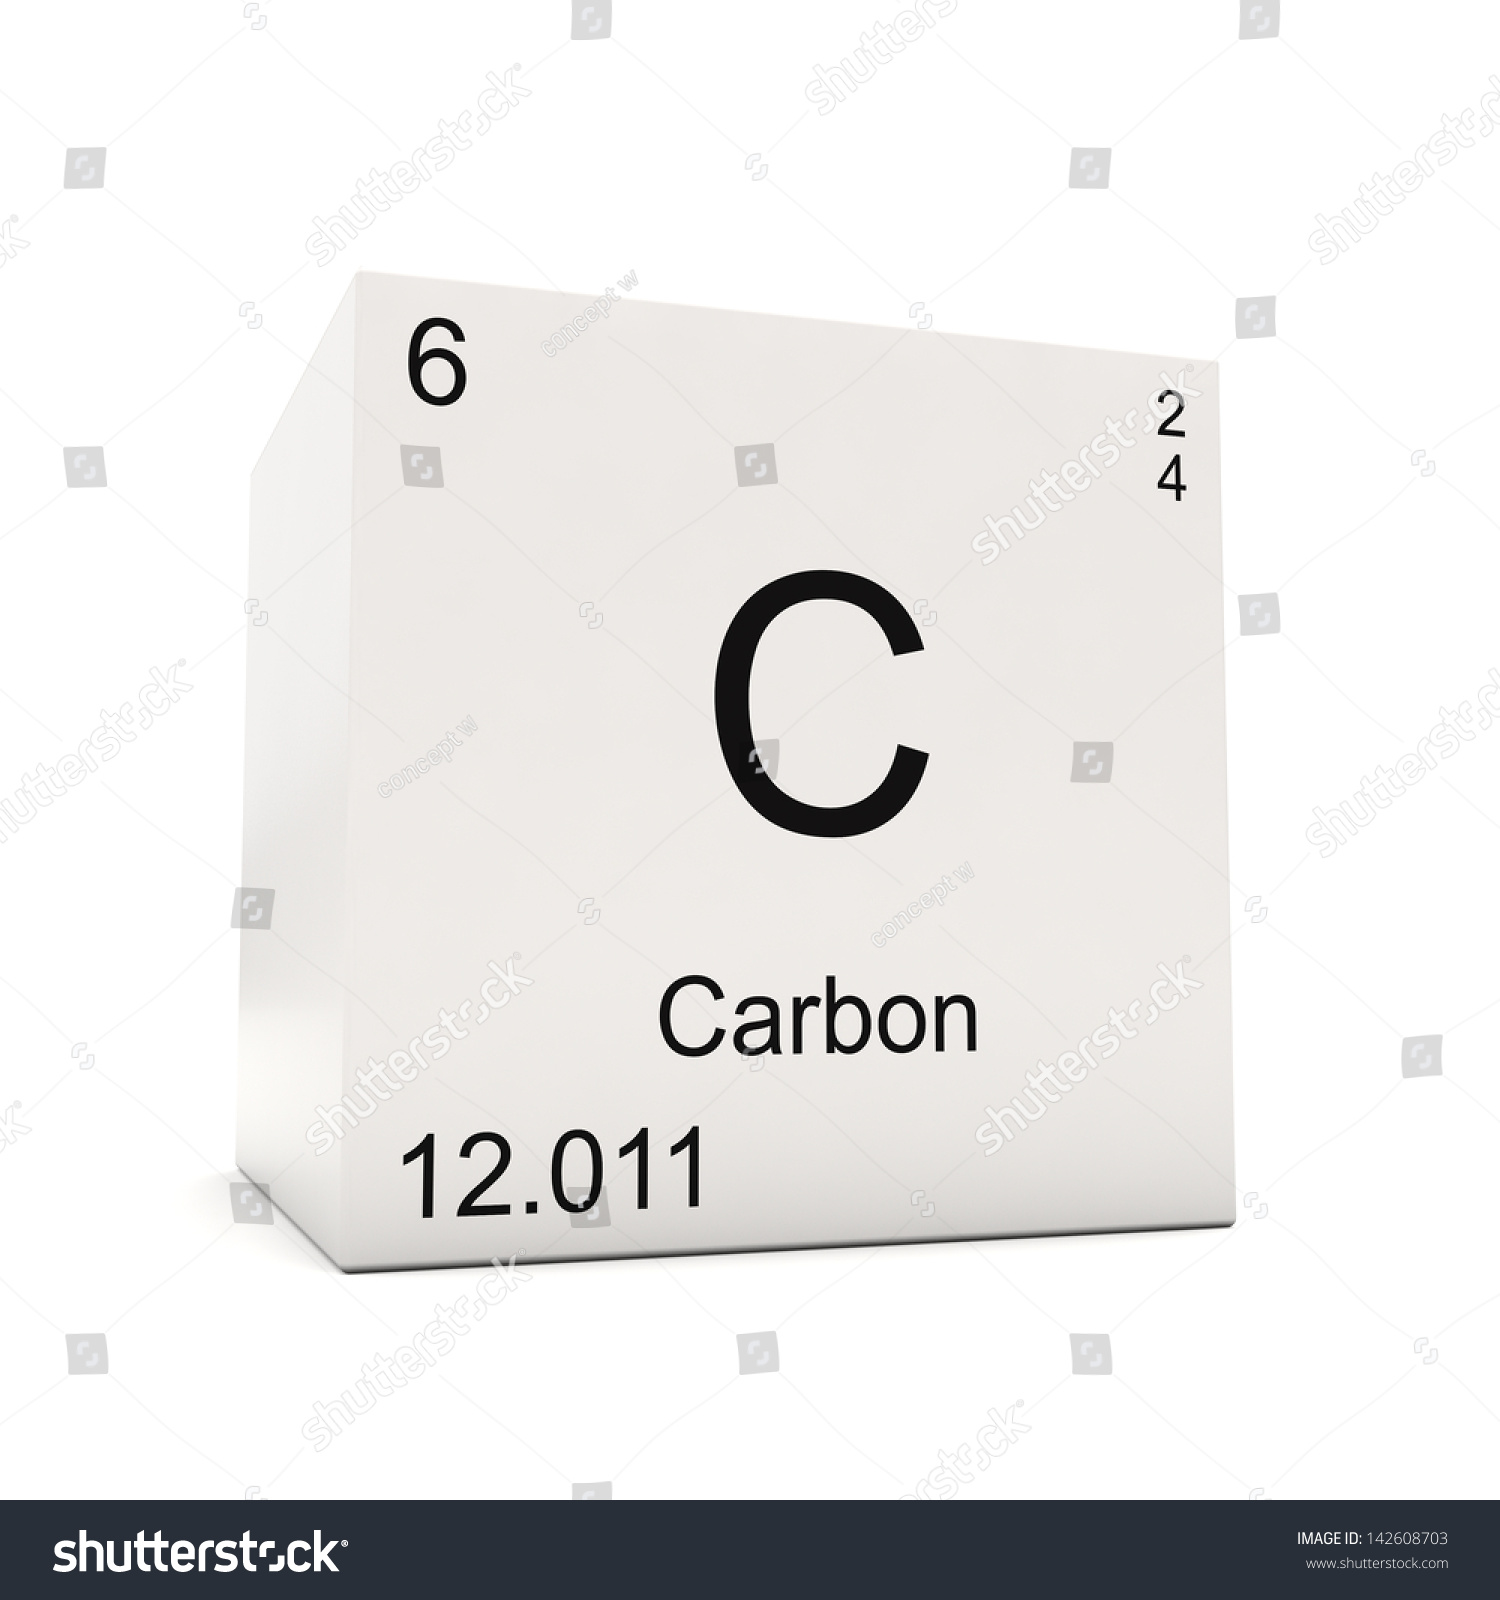 Cube carbon element periodic table isolated stock illustration cube of carbon element of the periodic table isolated on white background gamestrikefo Gallery